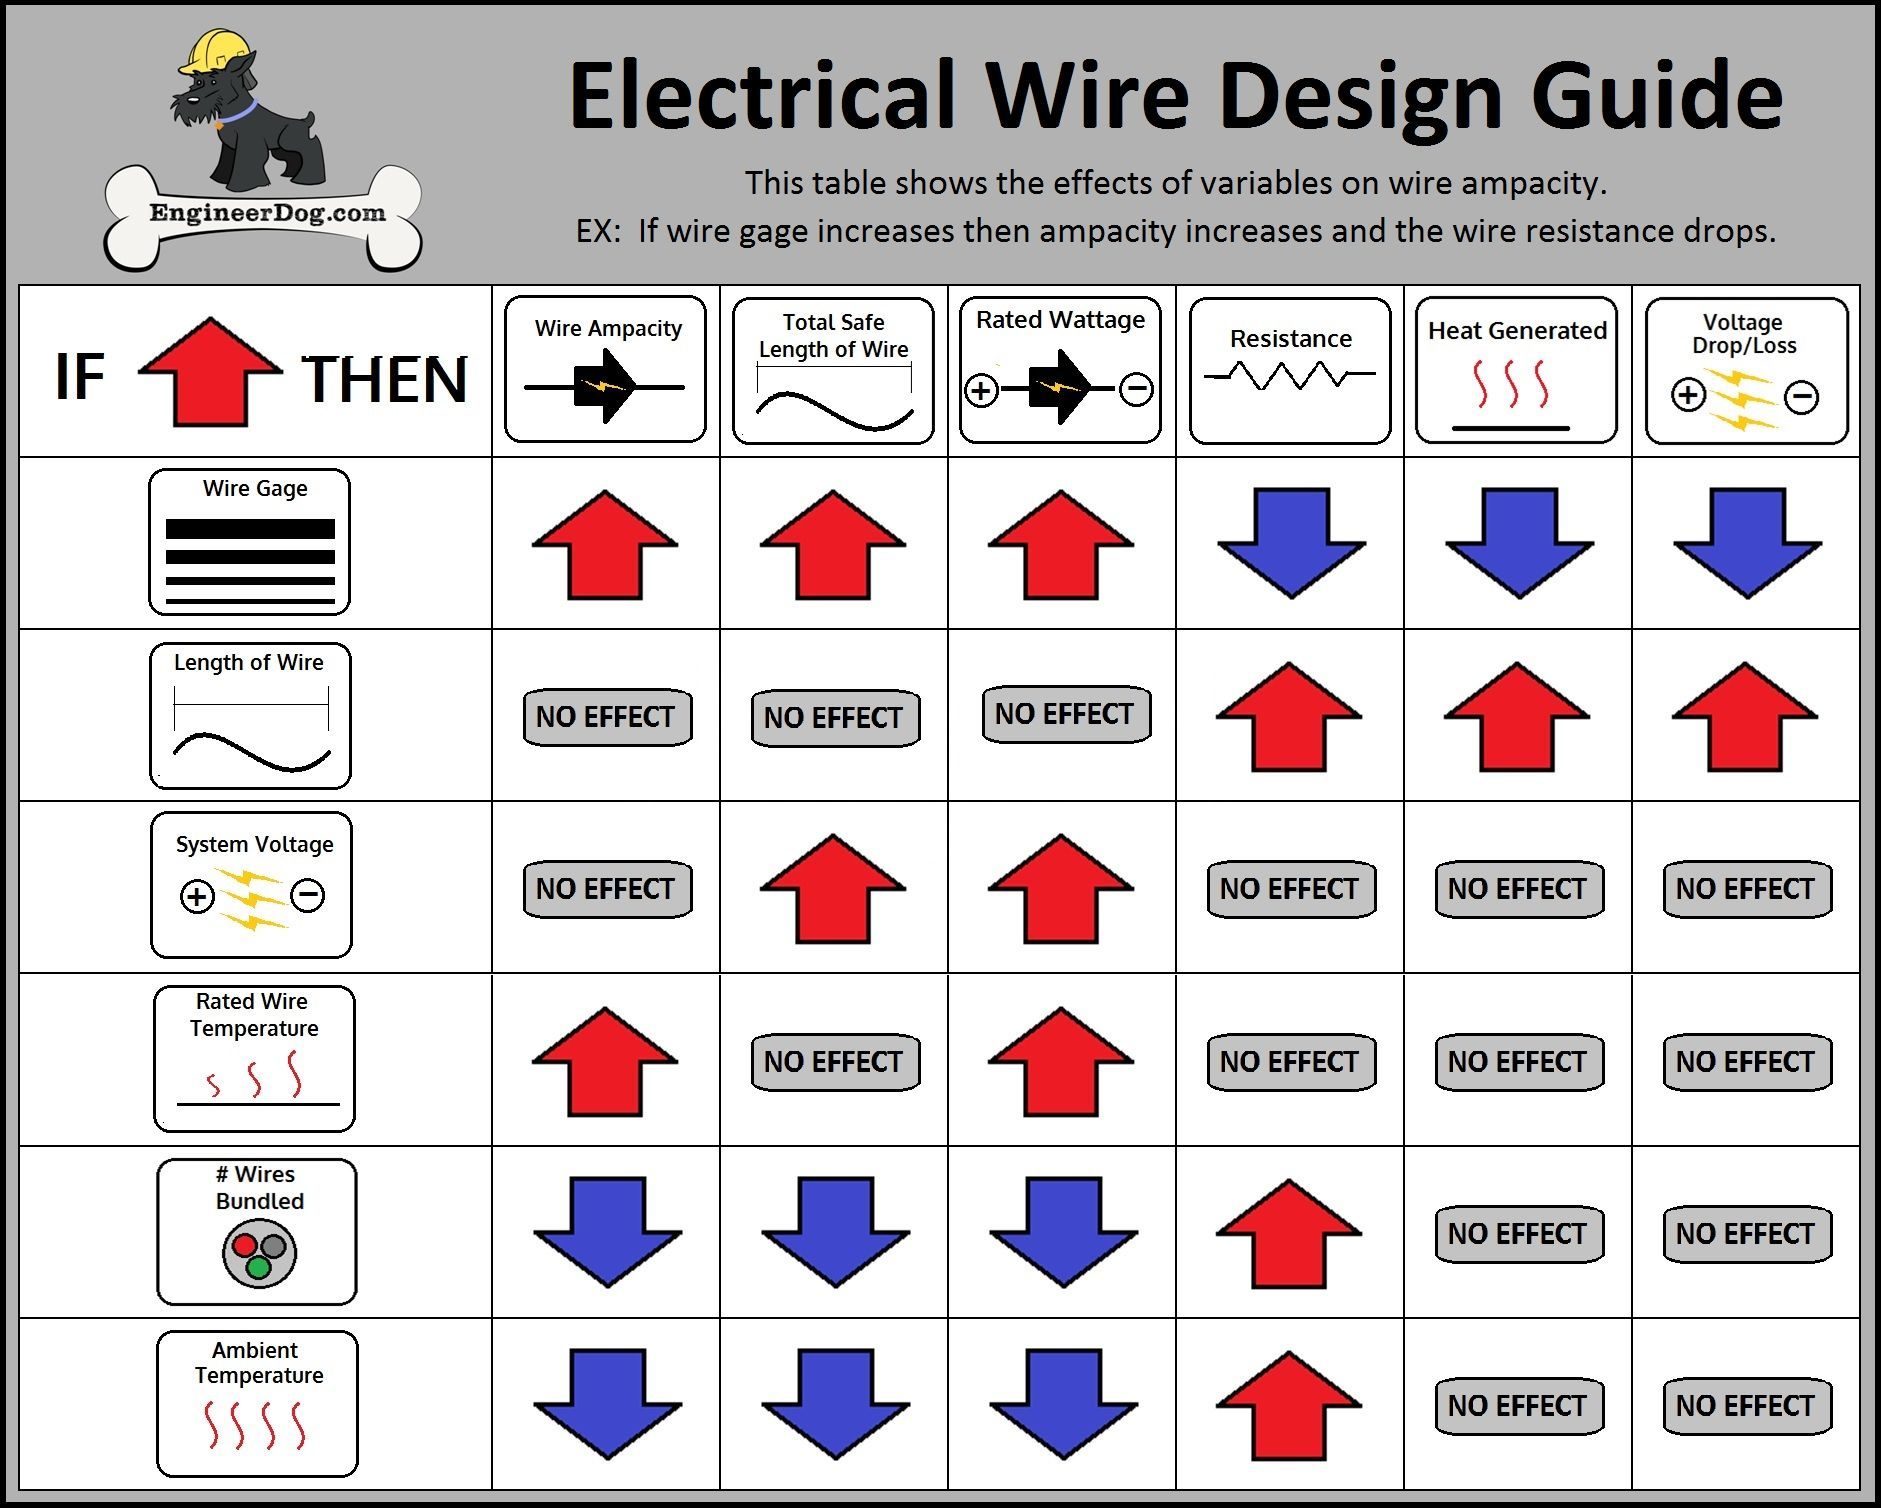 hight resolution of home wiring gauge guides wiring diagram expert house wiring gauge chart electrical wire design guide see